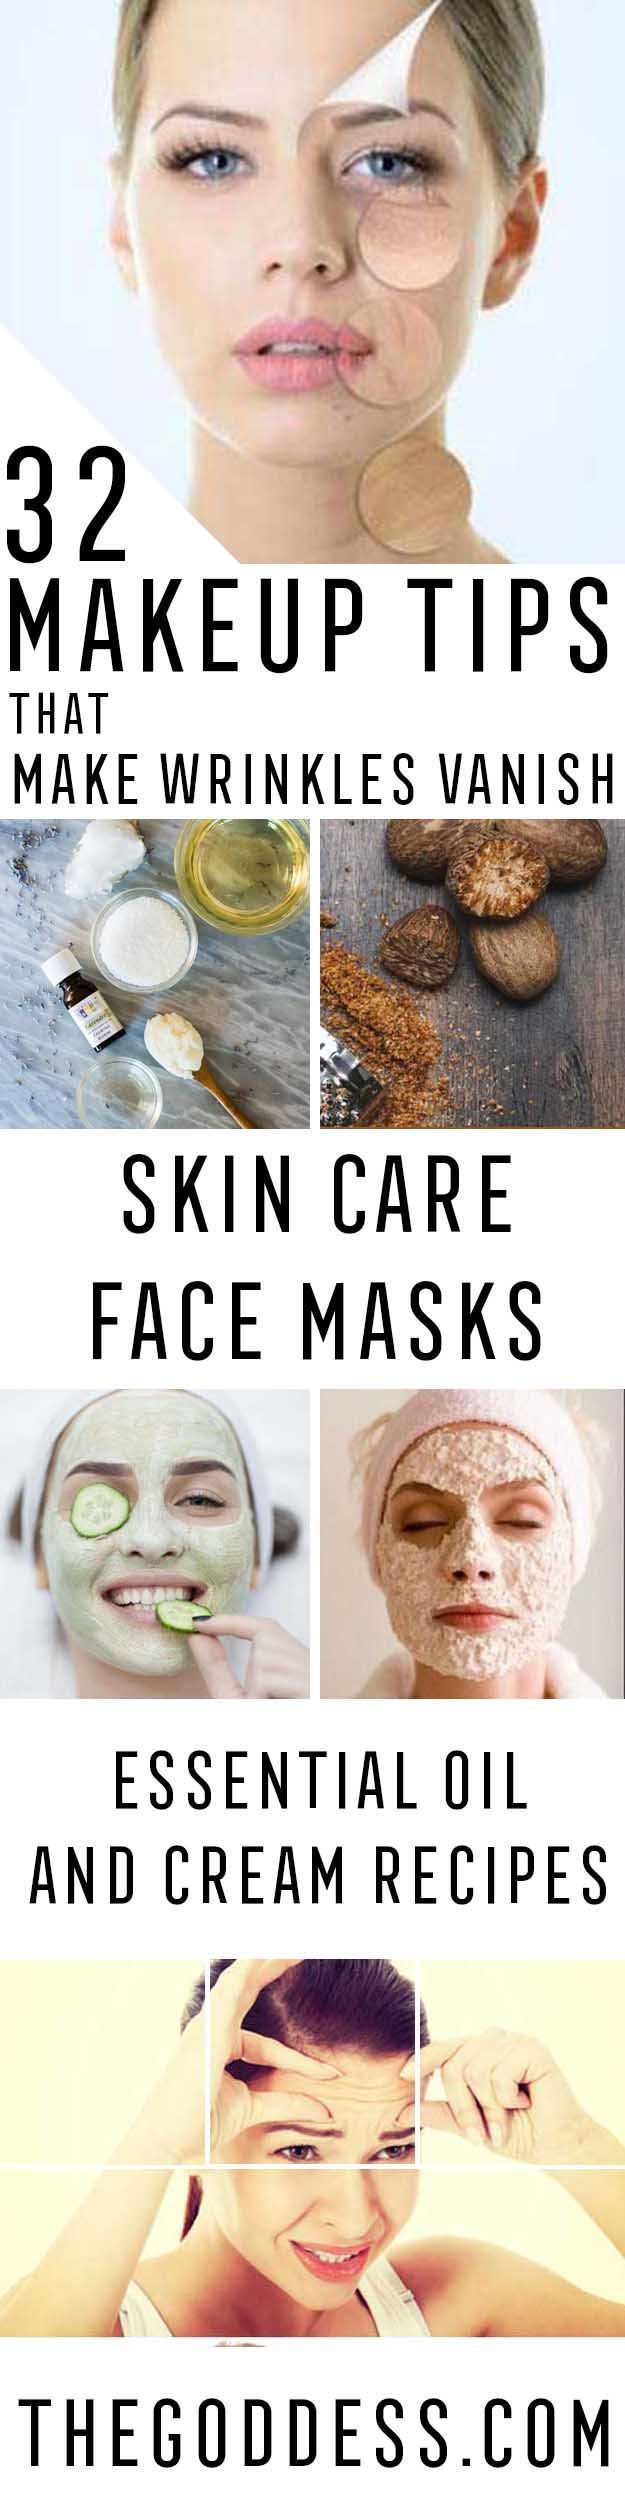 Makeup Tips That Make Wrinkles Vanish - Make Up and Anti Aging Skin Care Home Remedies and Essential Oils - How To Get Faces To Look Years Younger - Skincare Products For Women to Combat Crows Around the Eyes - https://thegoddess.com/makeup-tips-to-make-wrinkles-vanish